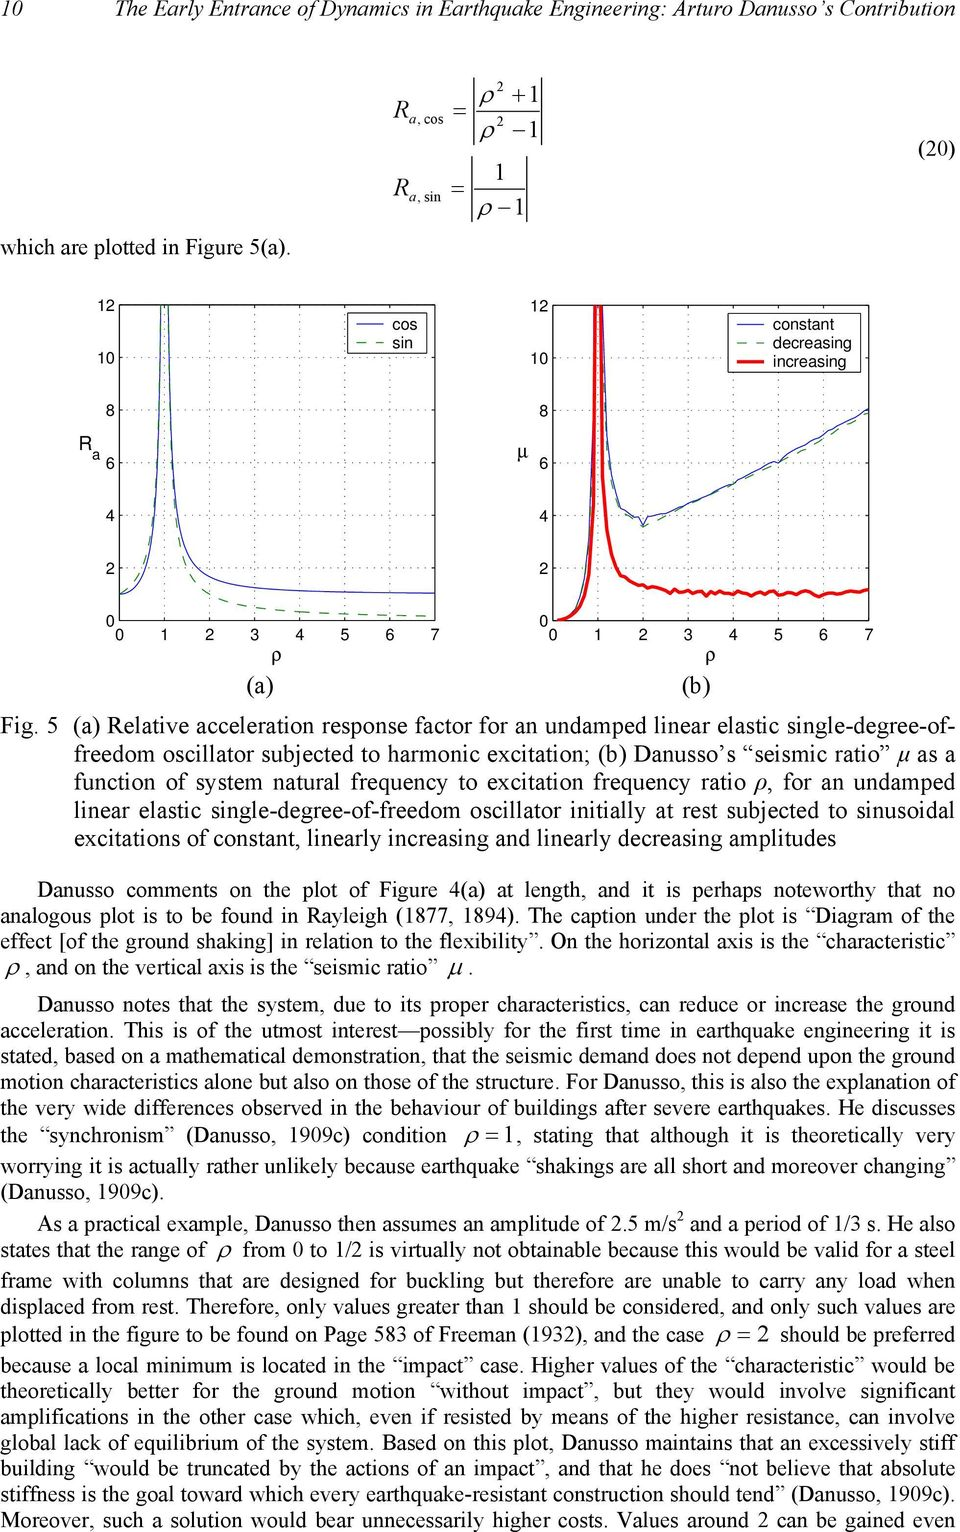 5 (a) Relative acceleration response factor for an undamped linear elastic single-degree-offreedom oscillator subjected to harmonic excitation; (b) Danusso s seismic ratio µ as a function of system